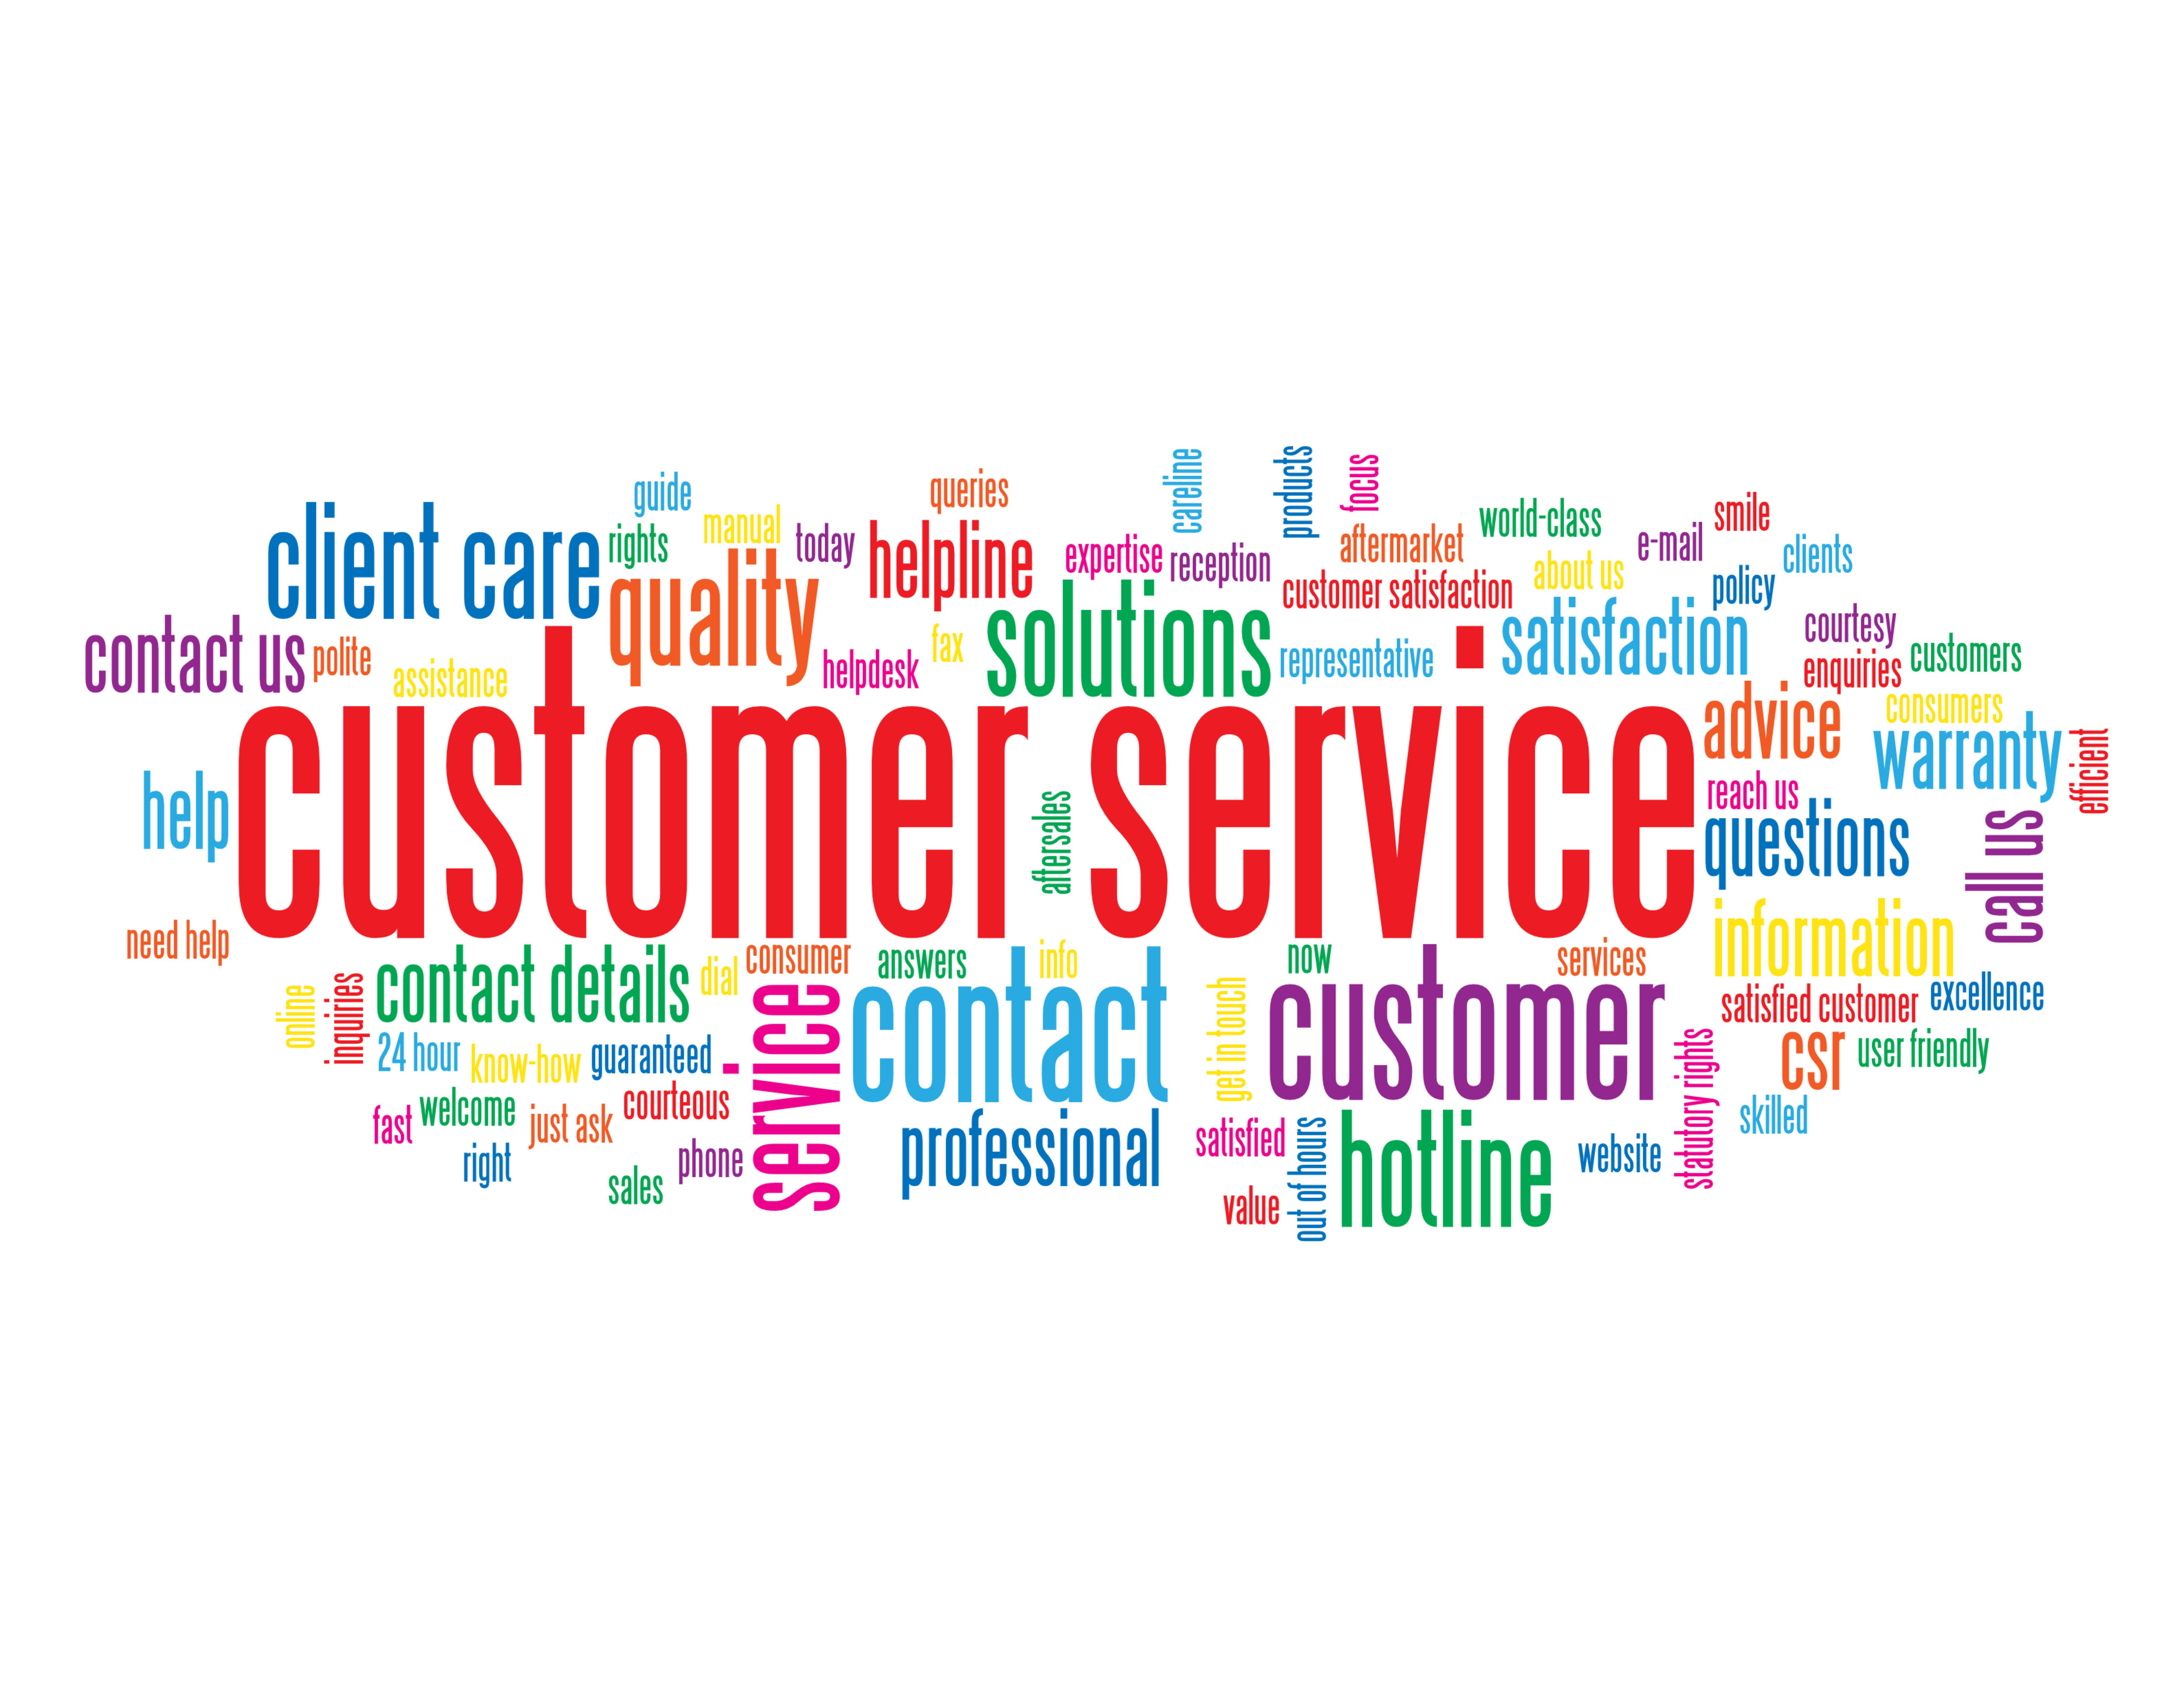 Customer service week clip art clipart free library Customer service week clip art - ClipartFest clipart free library